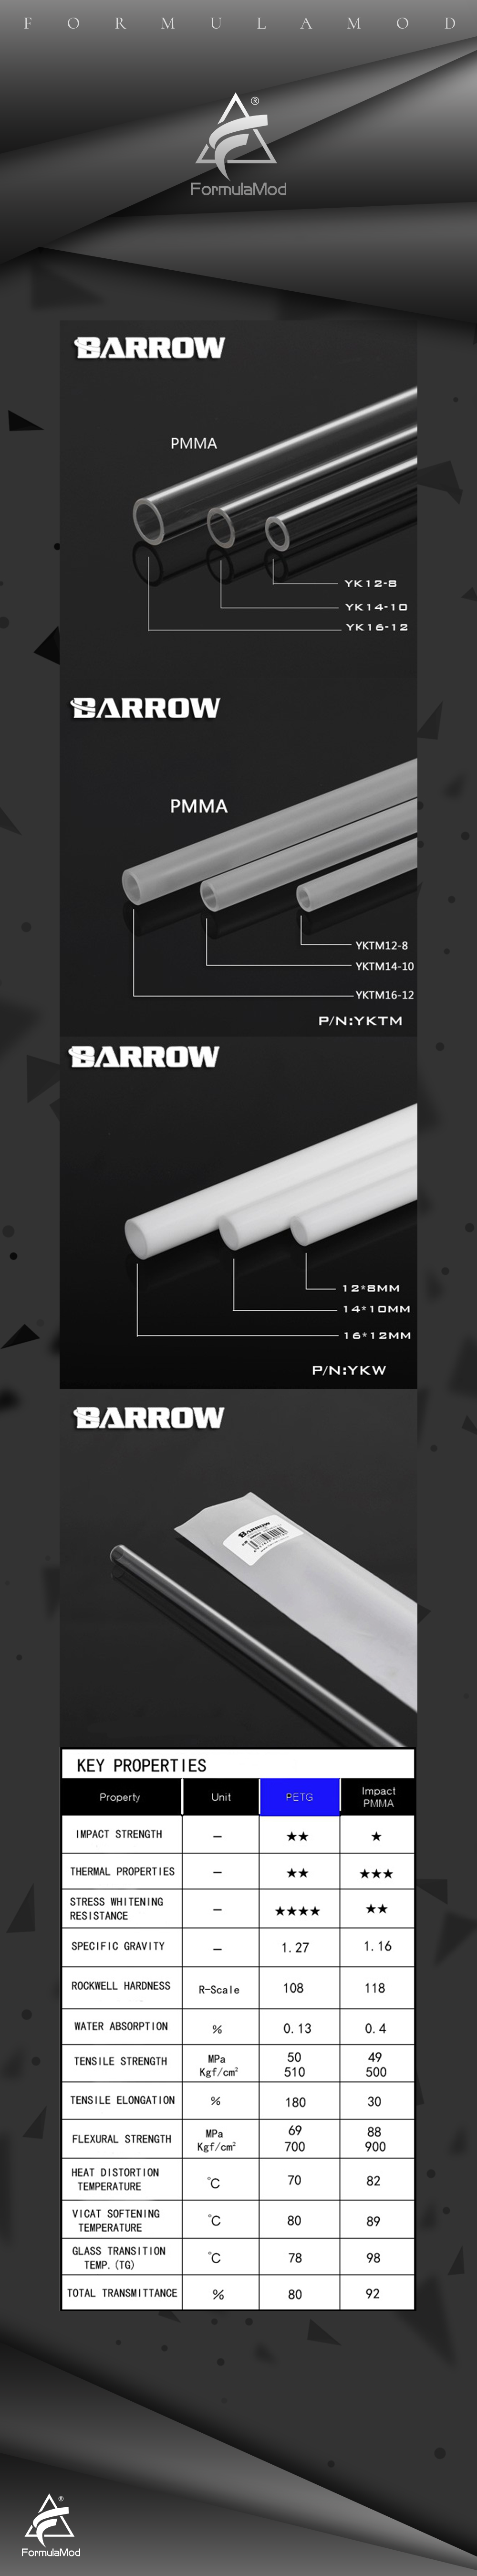 Barrow YK1208/YK1410/YK1612,  500mm Transparent Acrylic Hard Tubes, High Quality 8*12mm/10*14mm/12*16mm Water Cooling Hard Tubes